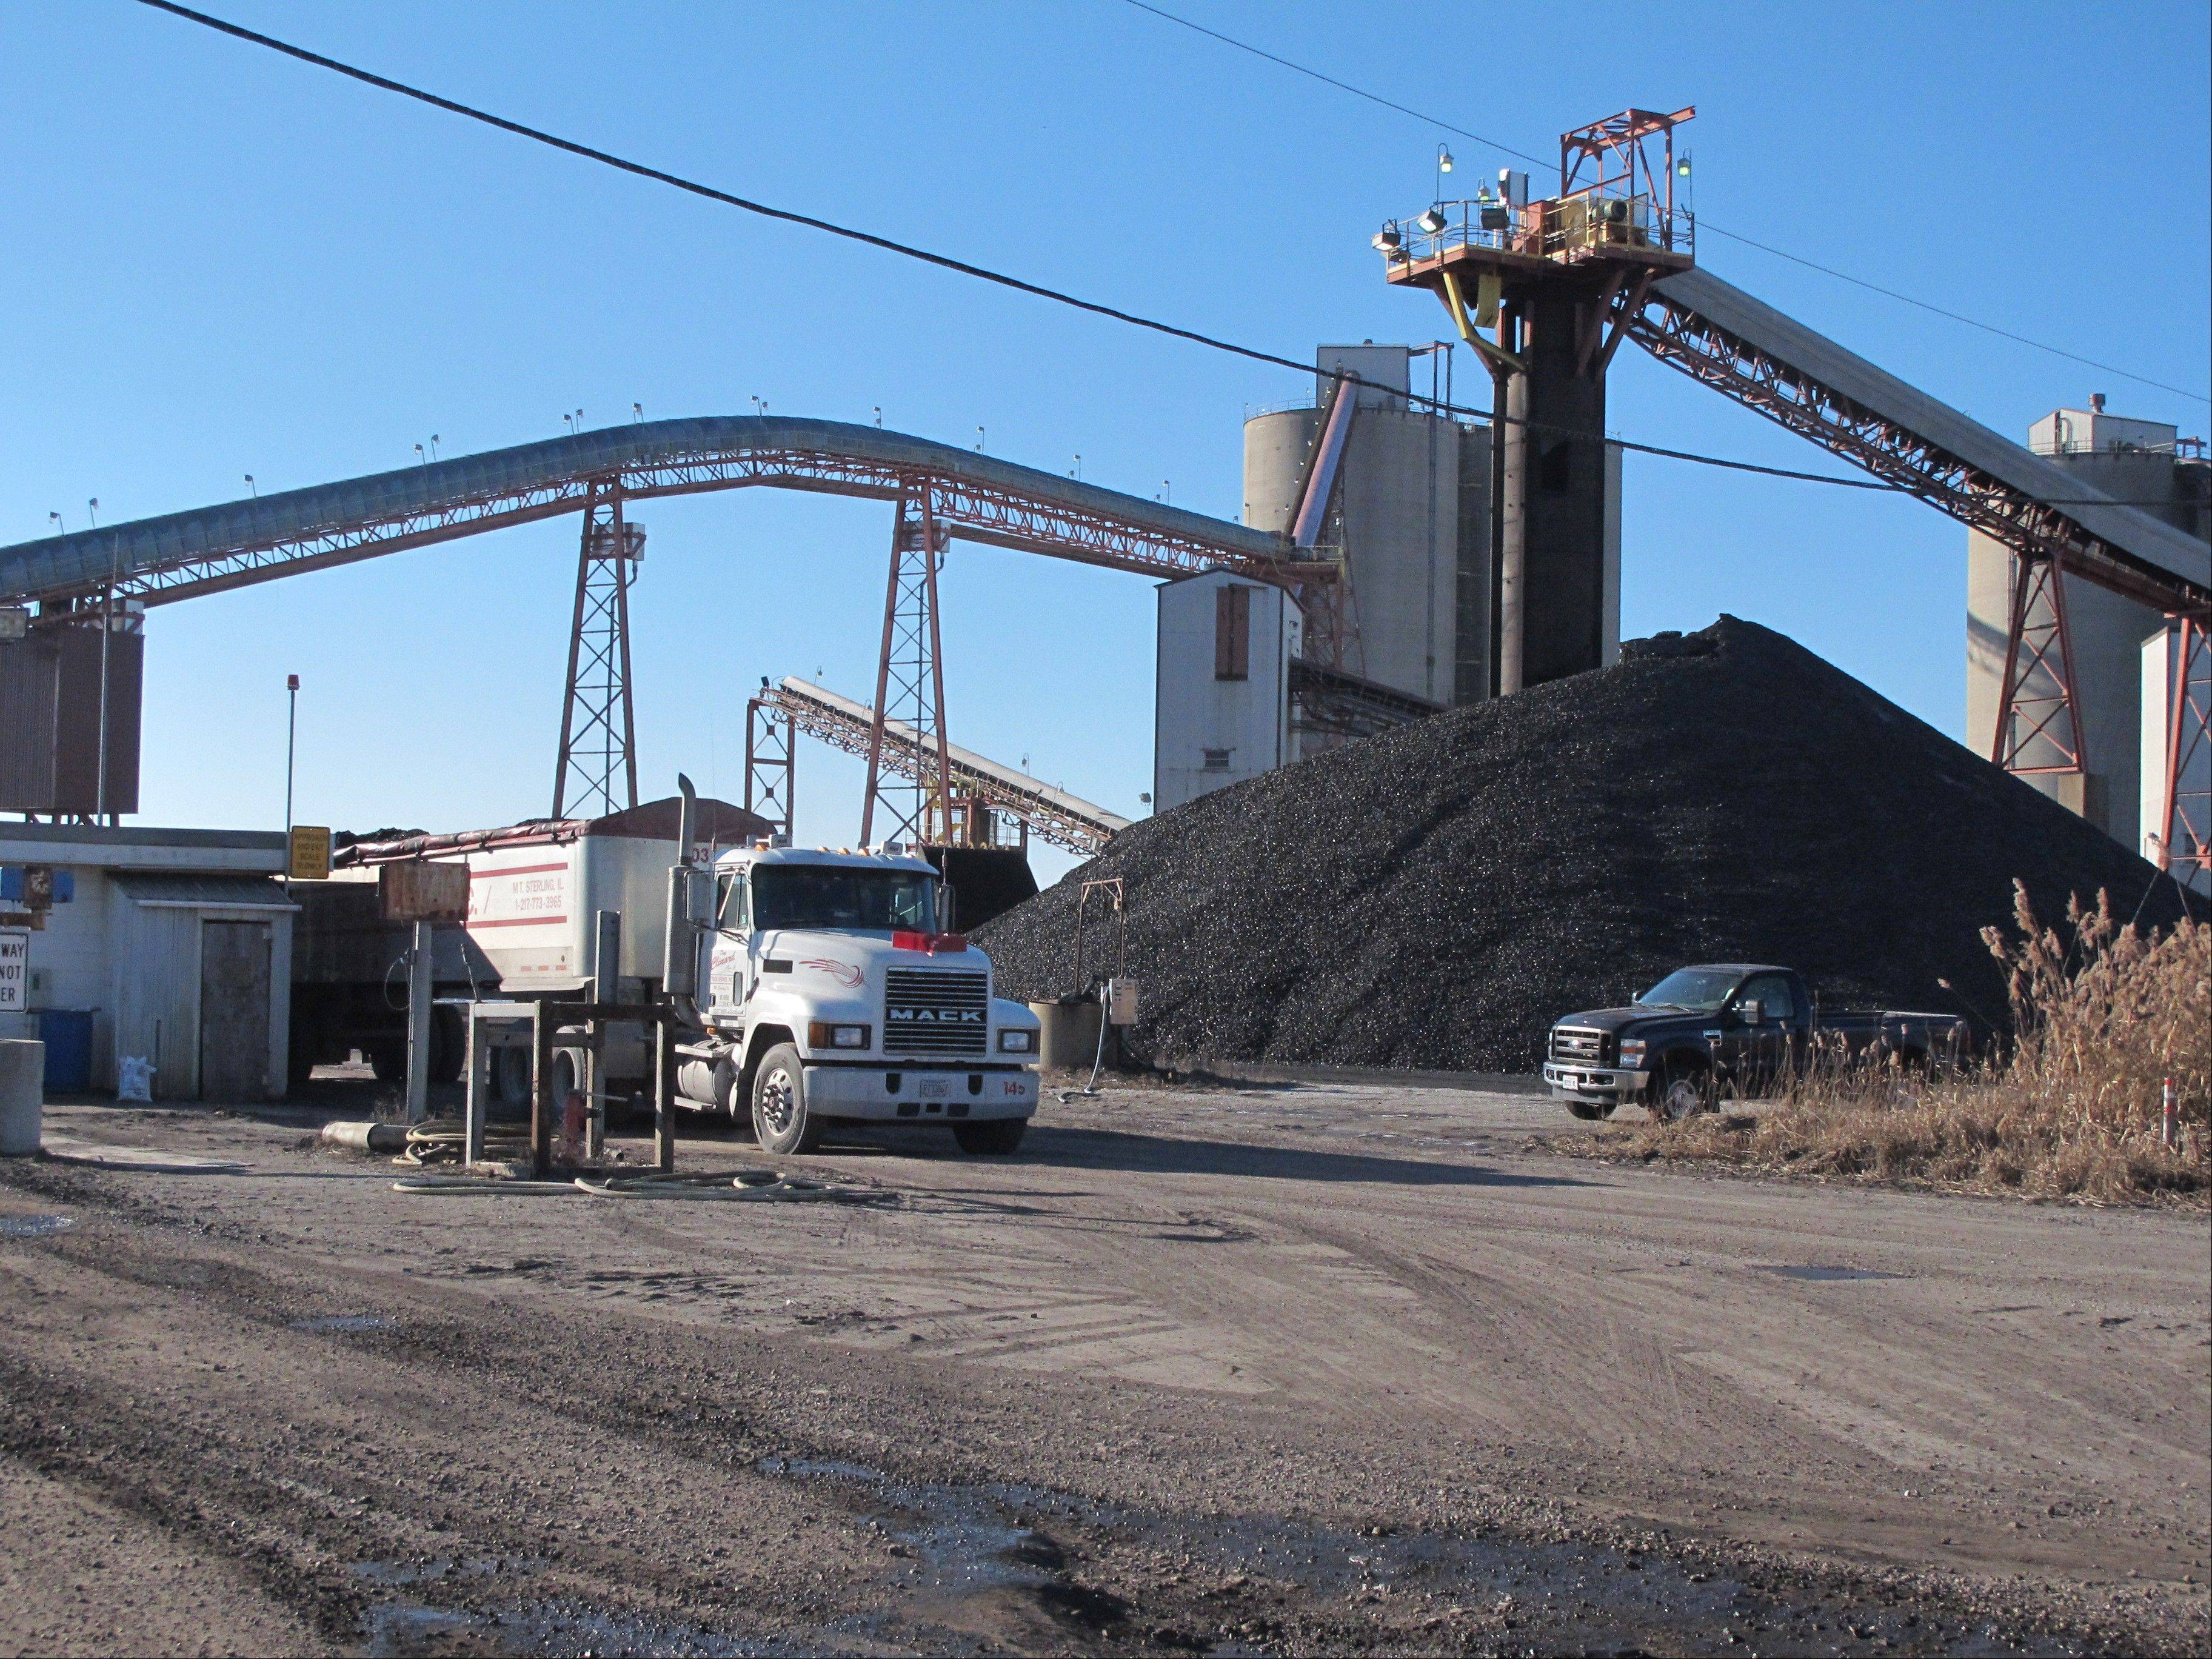 The Crown III underground coal mine near Farmersville, Ill., ceased operations on Dec. 19, costing nearly 200 workers their jobs. Many of the miners now are weighing what to do next, ranging from options that include retiring to moving elsewhere to find work in another mine in the coal-rich state.